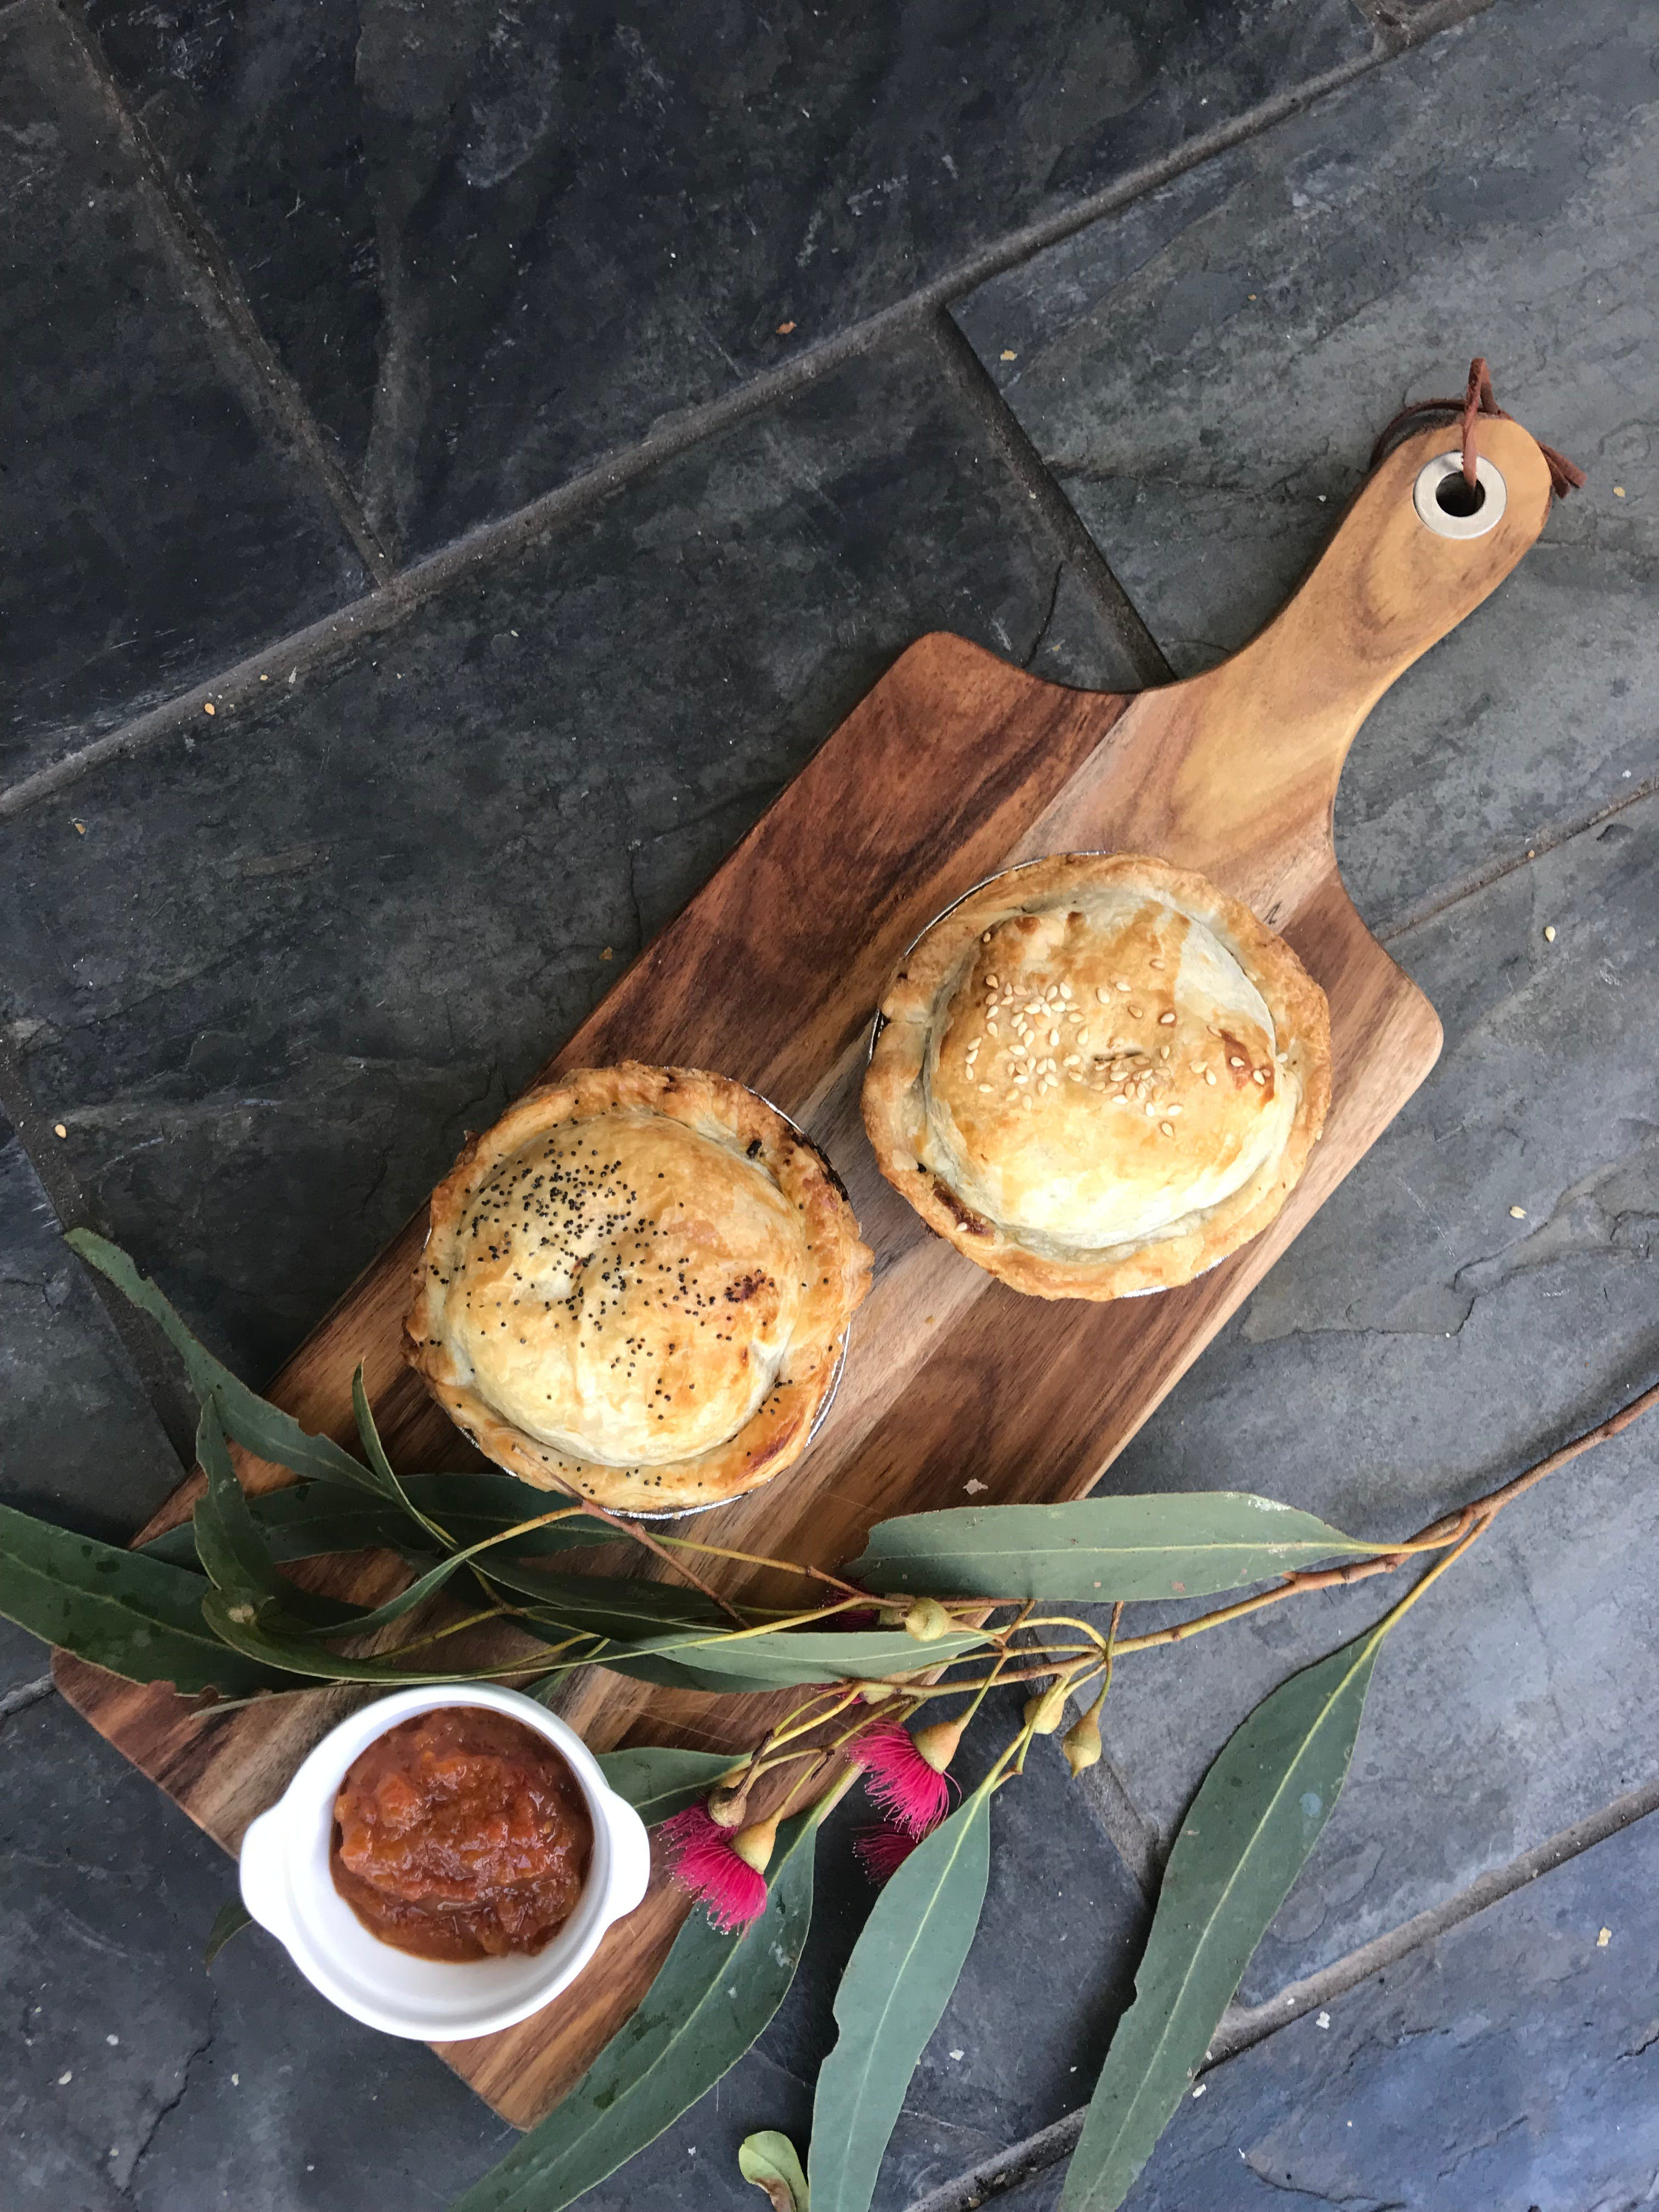 Aged Wine and Vintage Pies - Pubs and Clubs